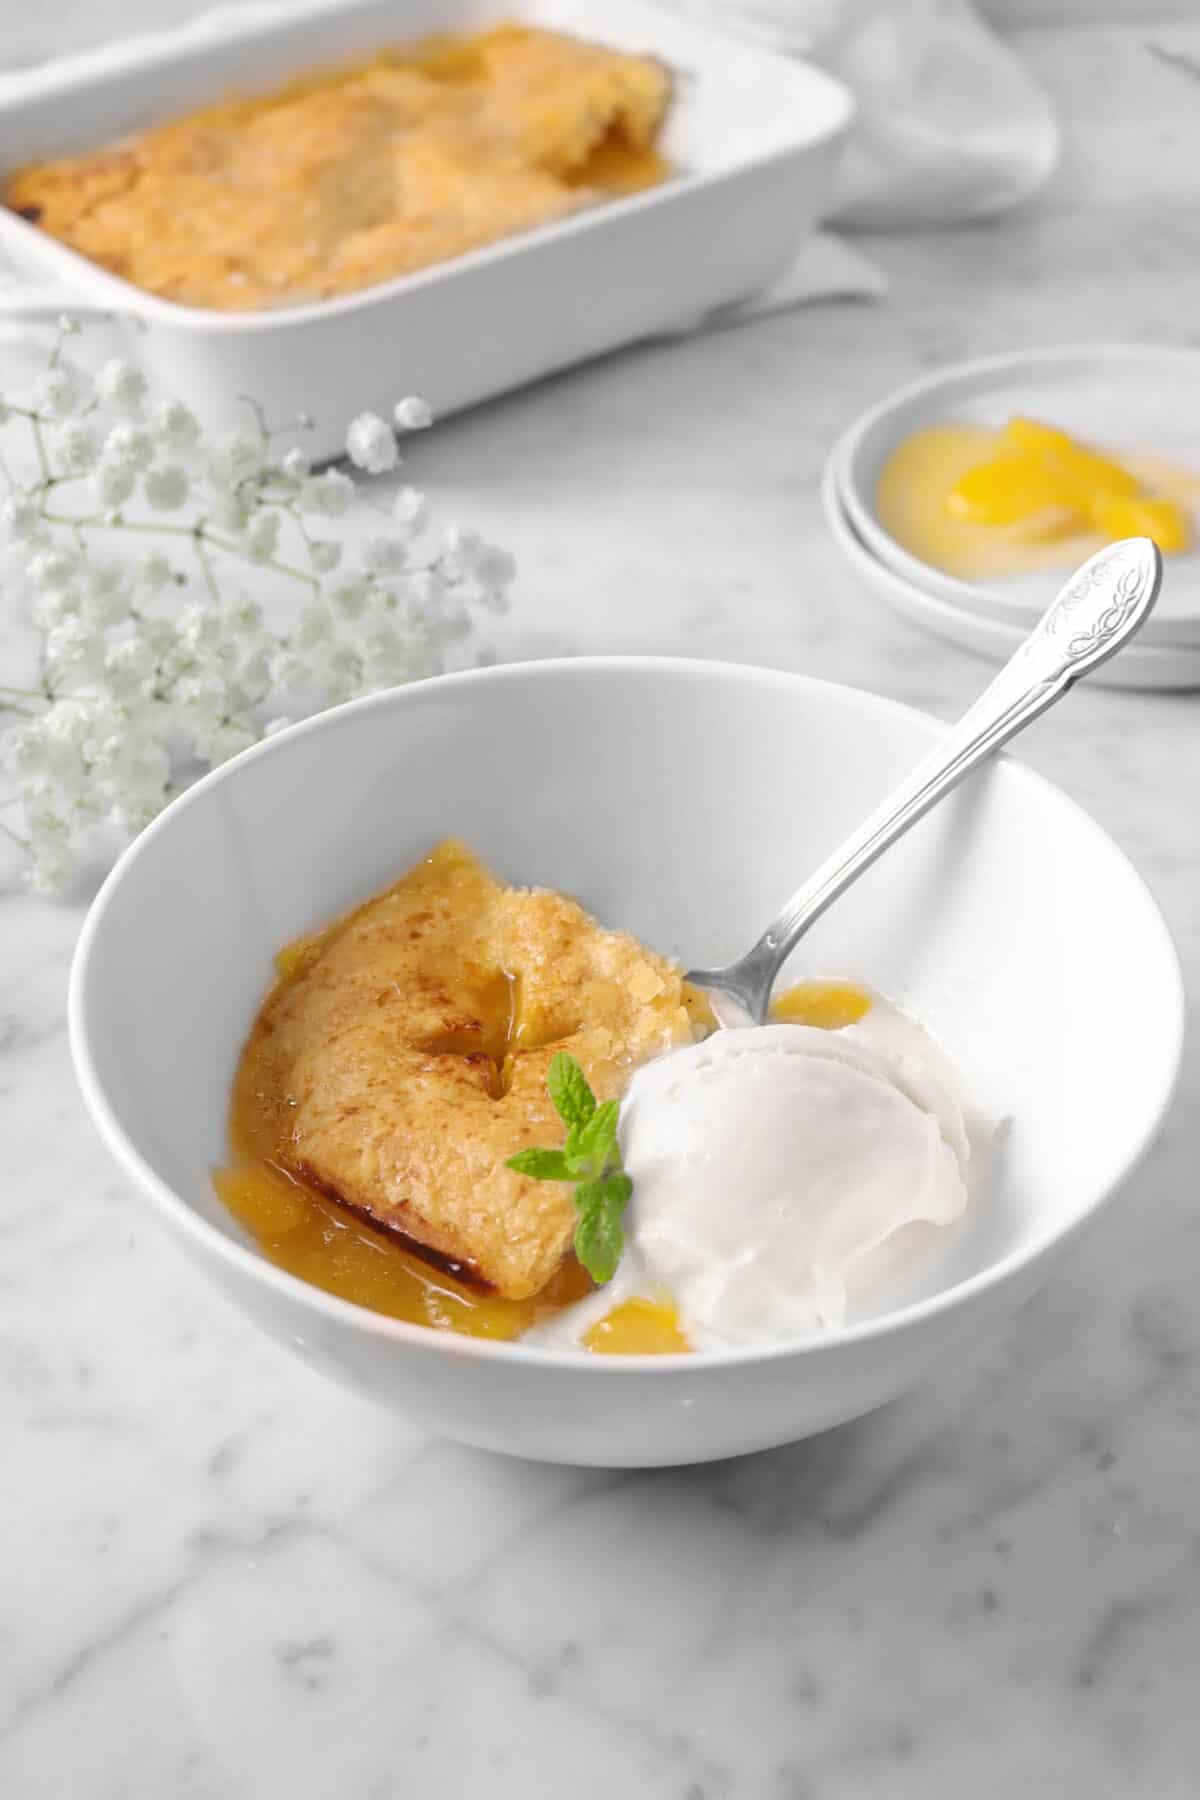 peach cobbler in a bowl with ice cream and a spoon, plates, flowers, and baking pan in background